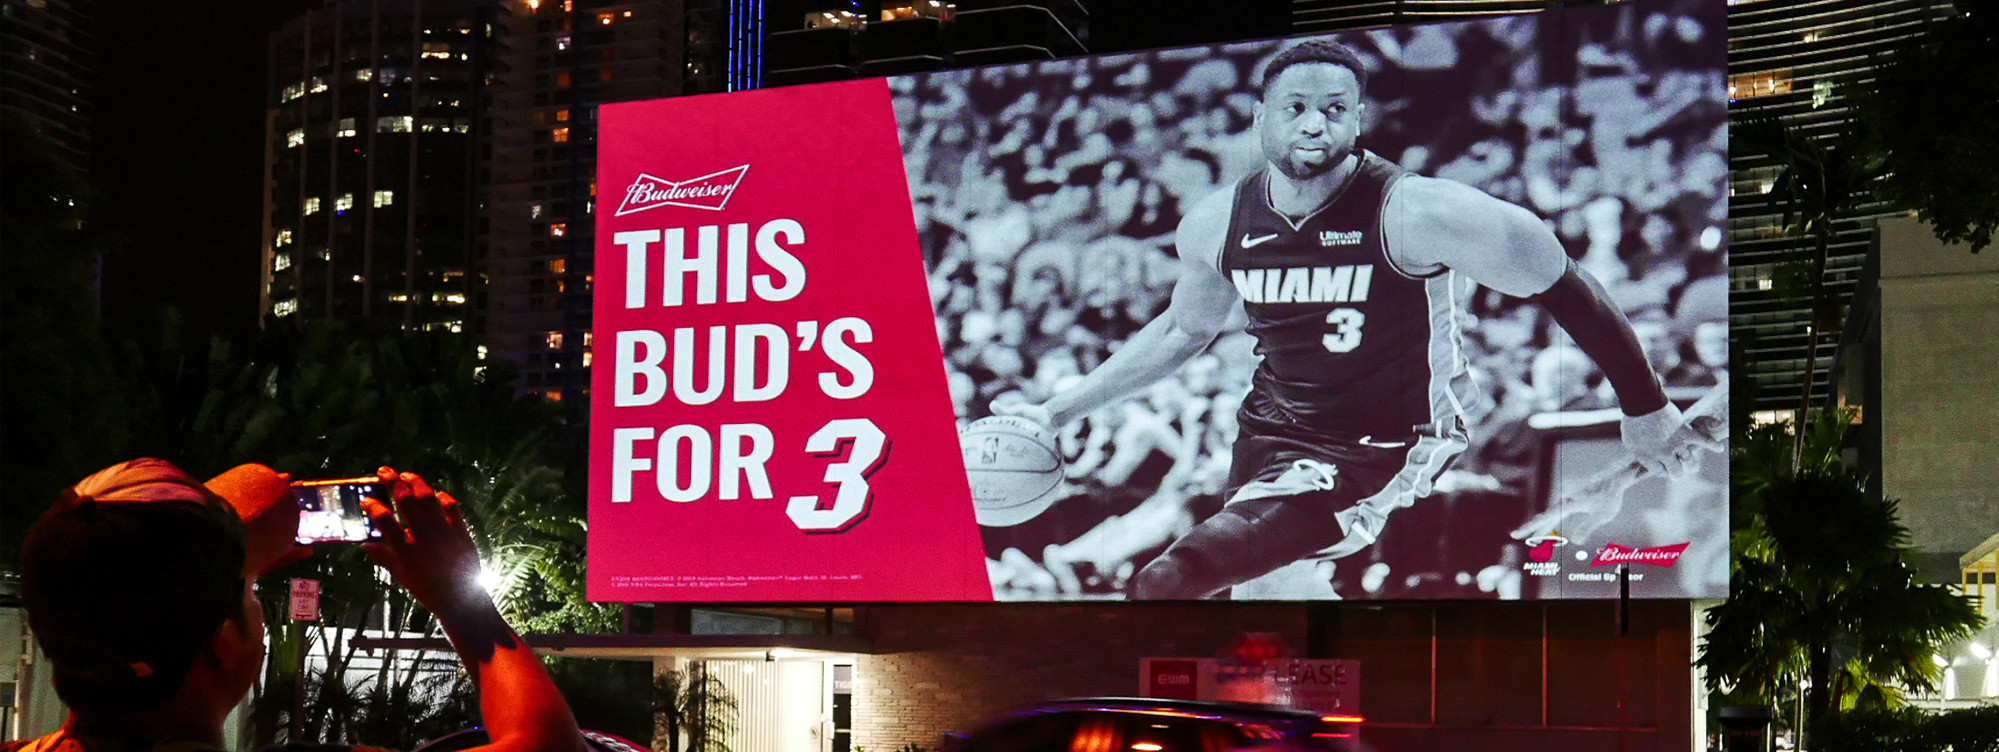 Experiential Marketing for Budweiser